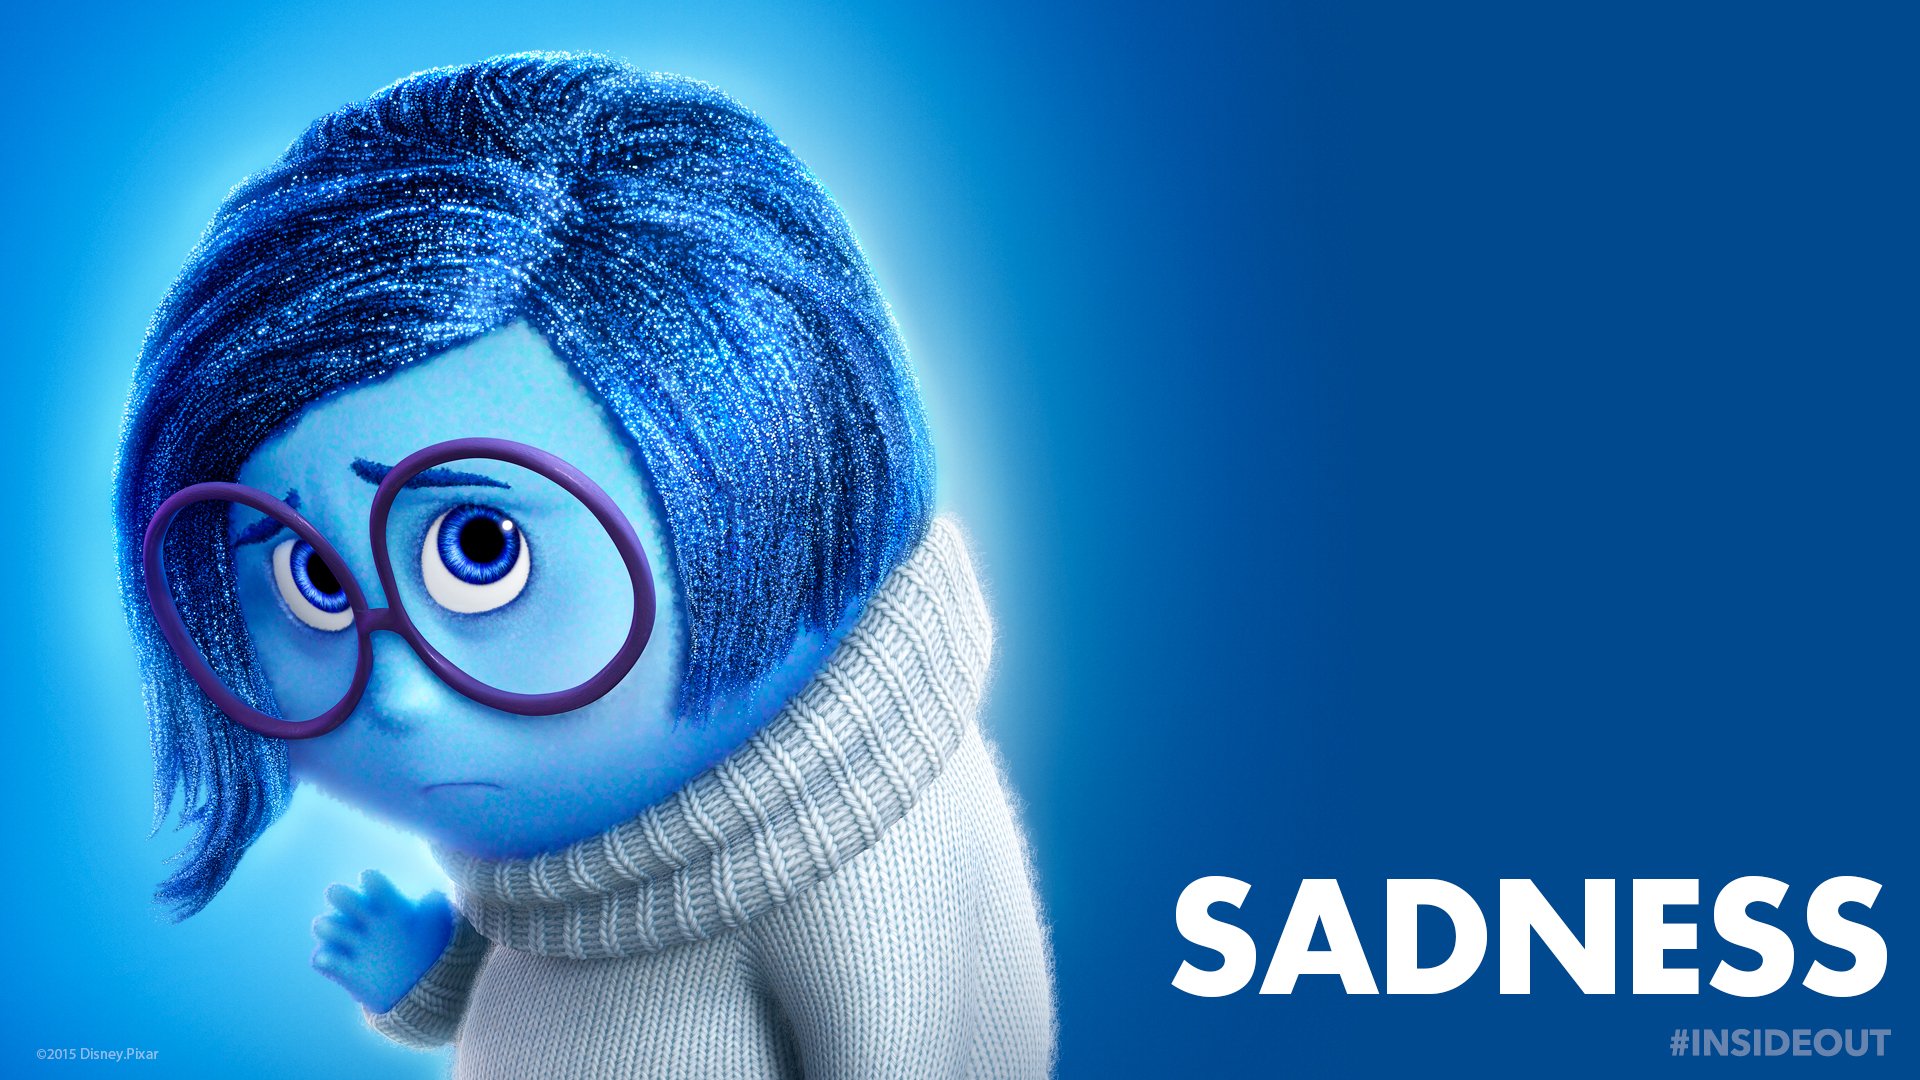 inside out Sadness wide